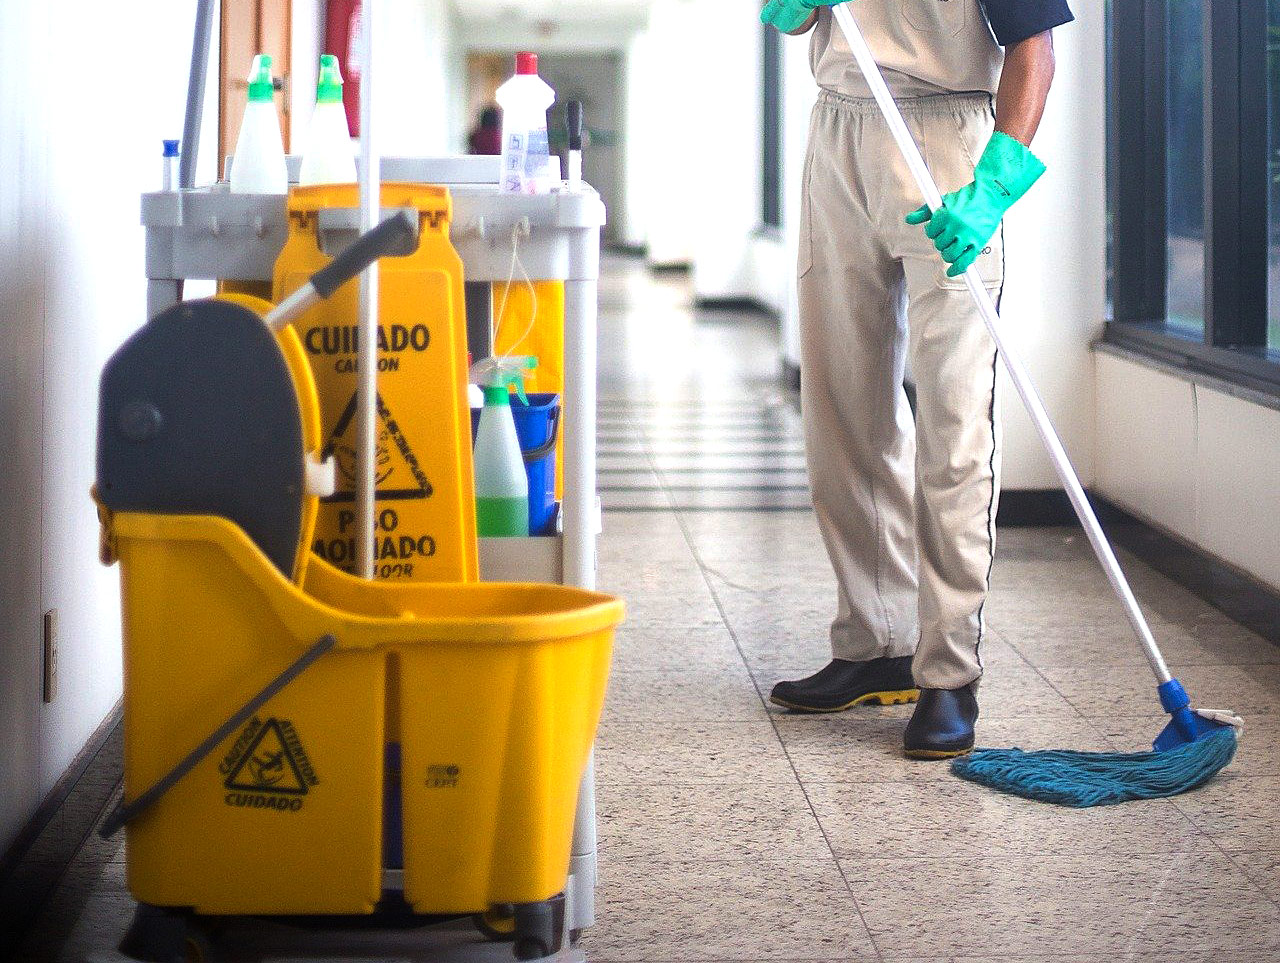 Cleaning for elderly cancelled amid COVID concerns